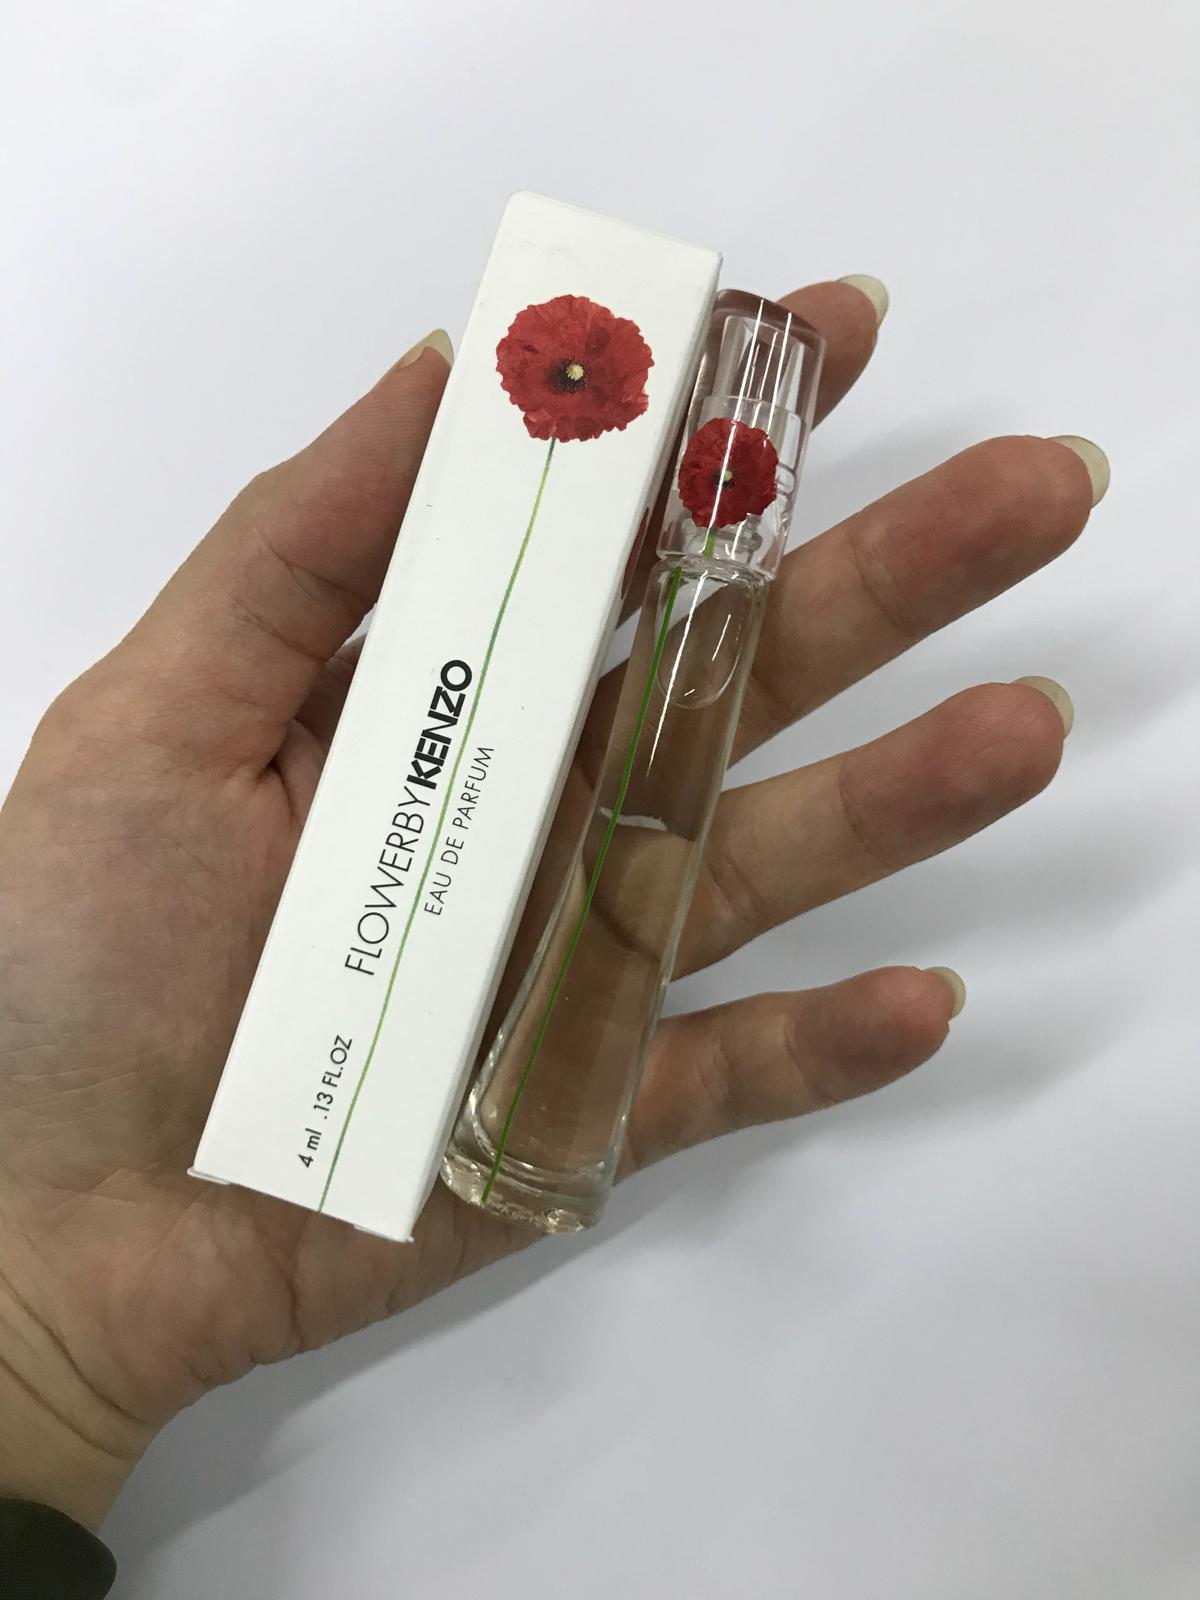 Christmas Special Kenzo Vials And Miniature Bundle Beureka Flower Woman Edt 100 Ml Original Free Vial By Edp Is A Powdery Floral Scent That Built On Three Basic Notes Woody Opens With Madarin Orange